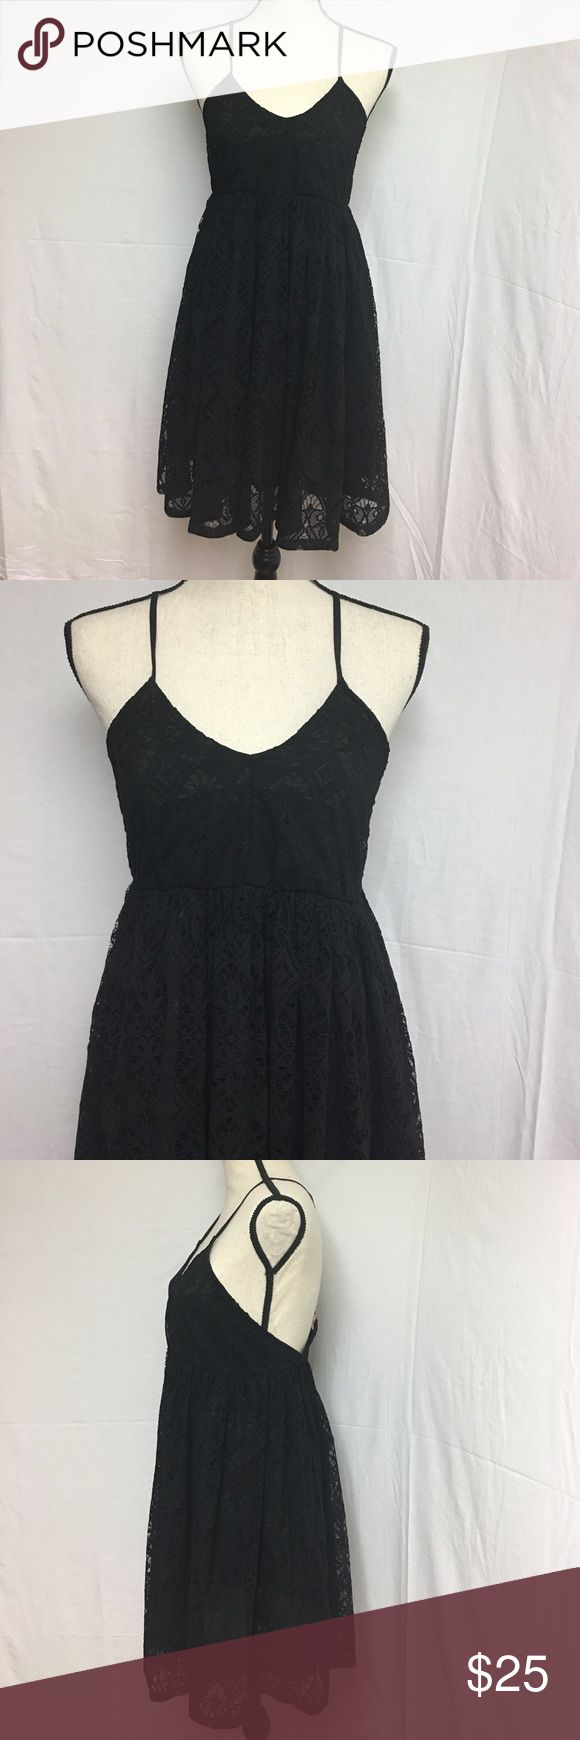 River island Chelsea girl Dress Excellent condition. Black lace and fully lined.                       Fabric : polyester River Island Dresses Mini